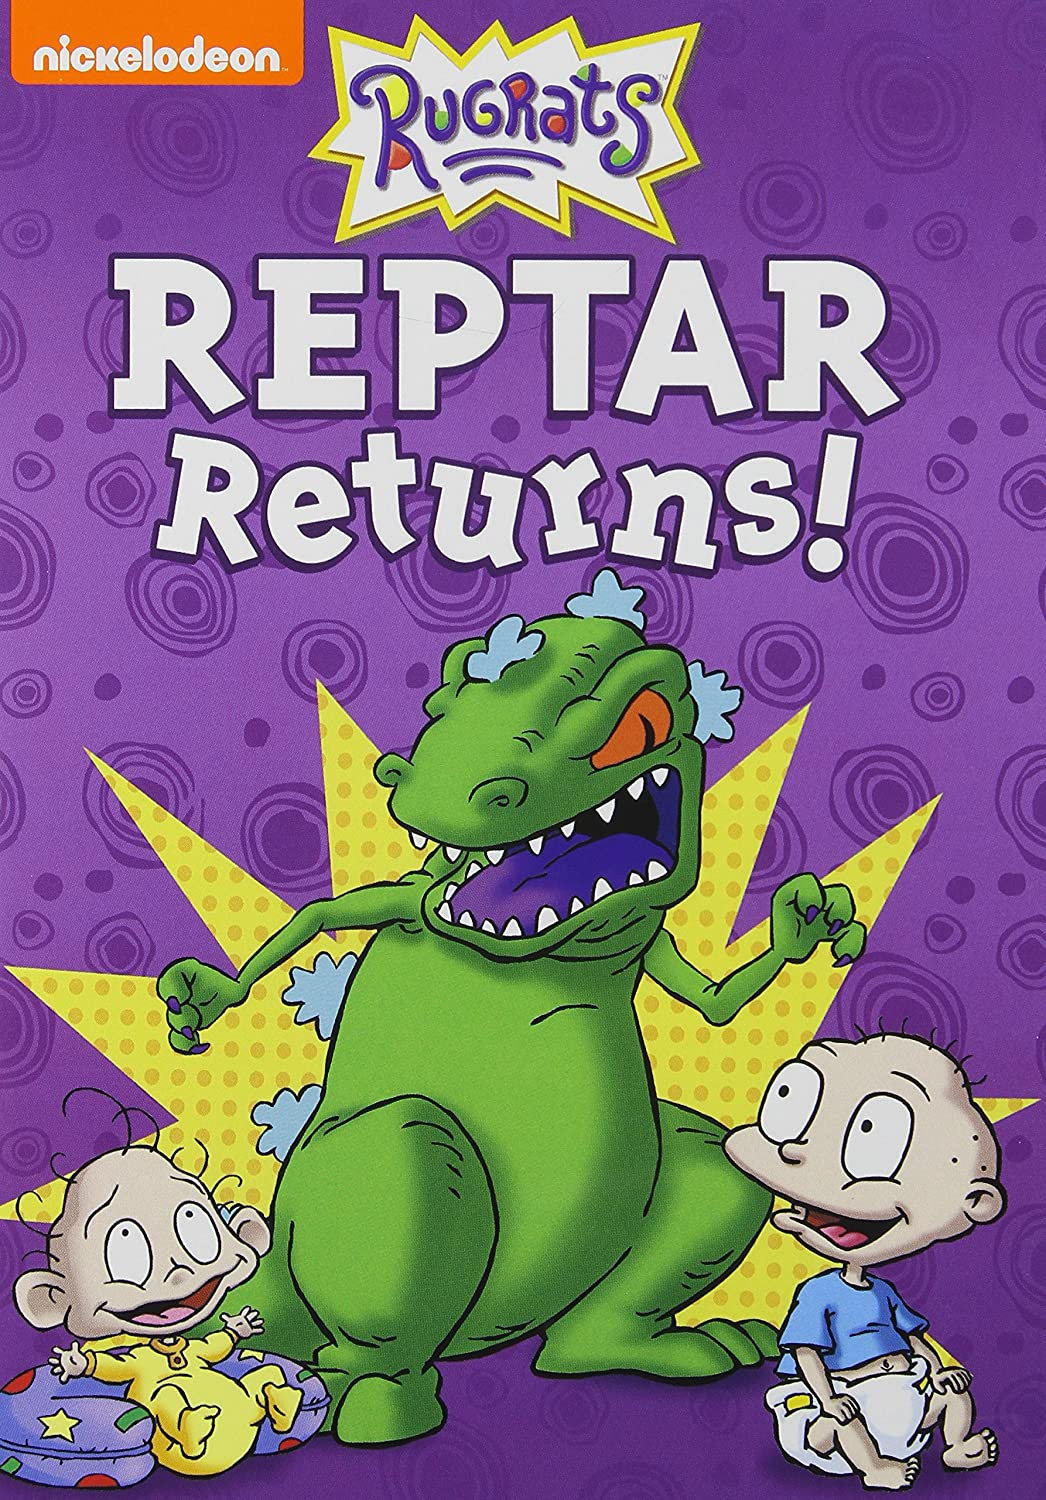 http://www.amazon.com/Rugrats-Returns-Artist-Not-Provided/dp/B00J5G1PQS/